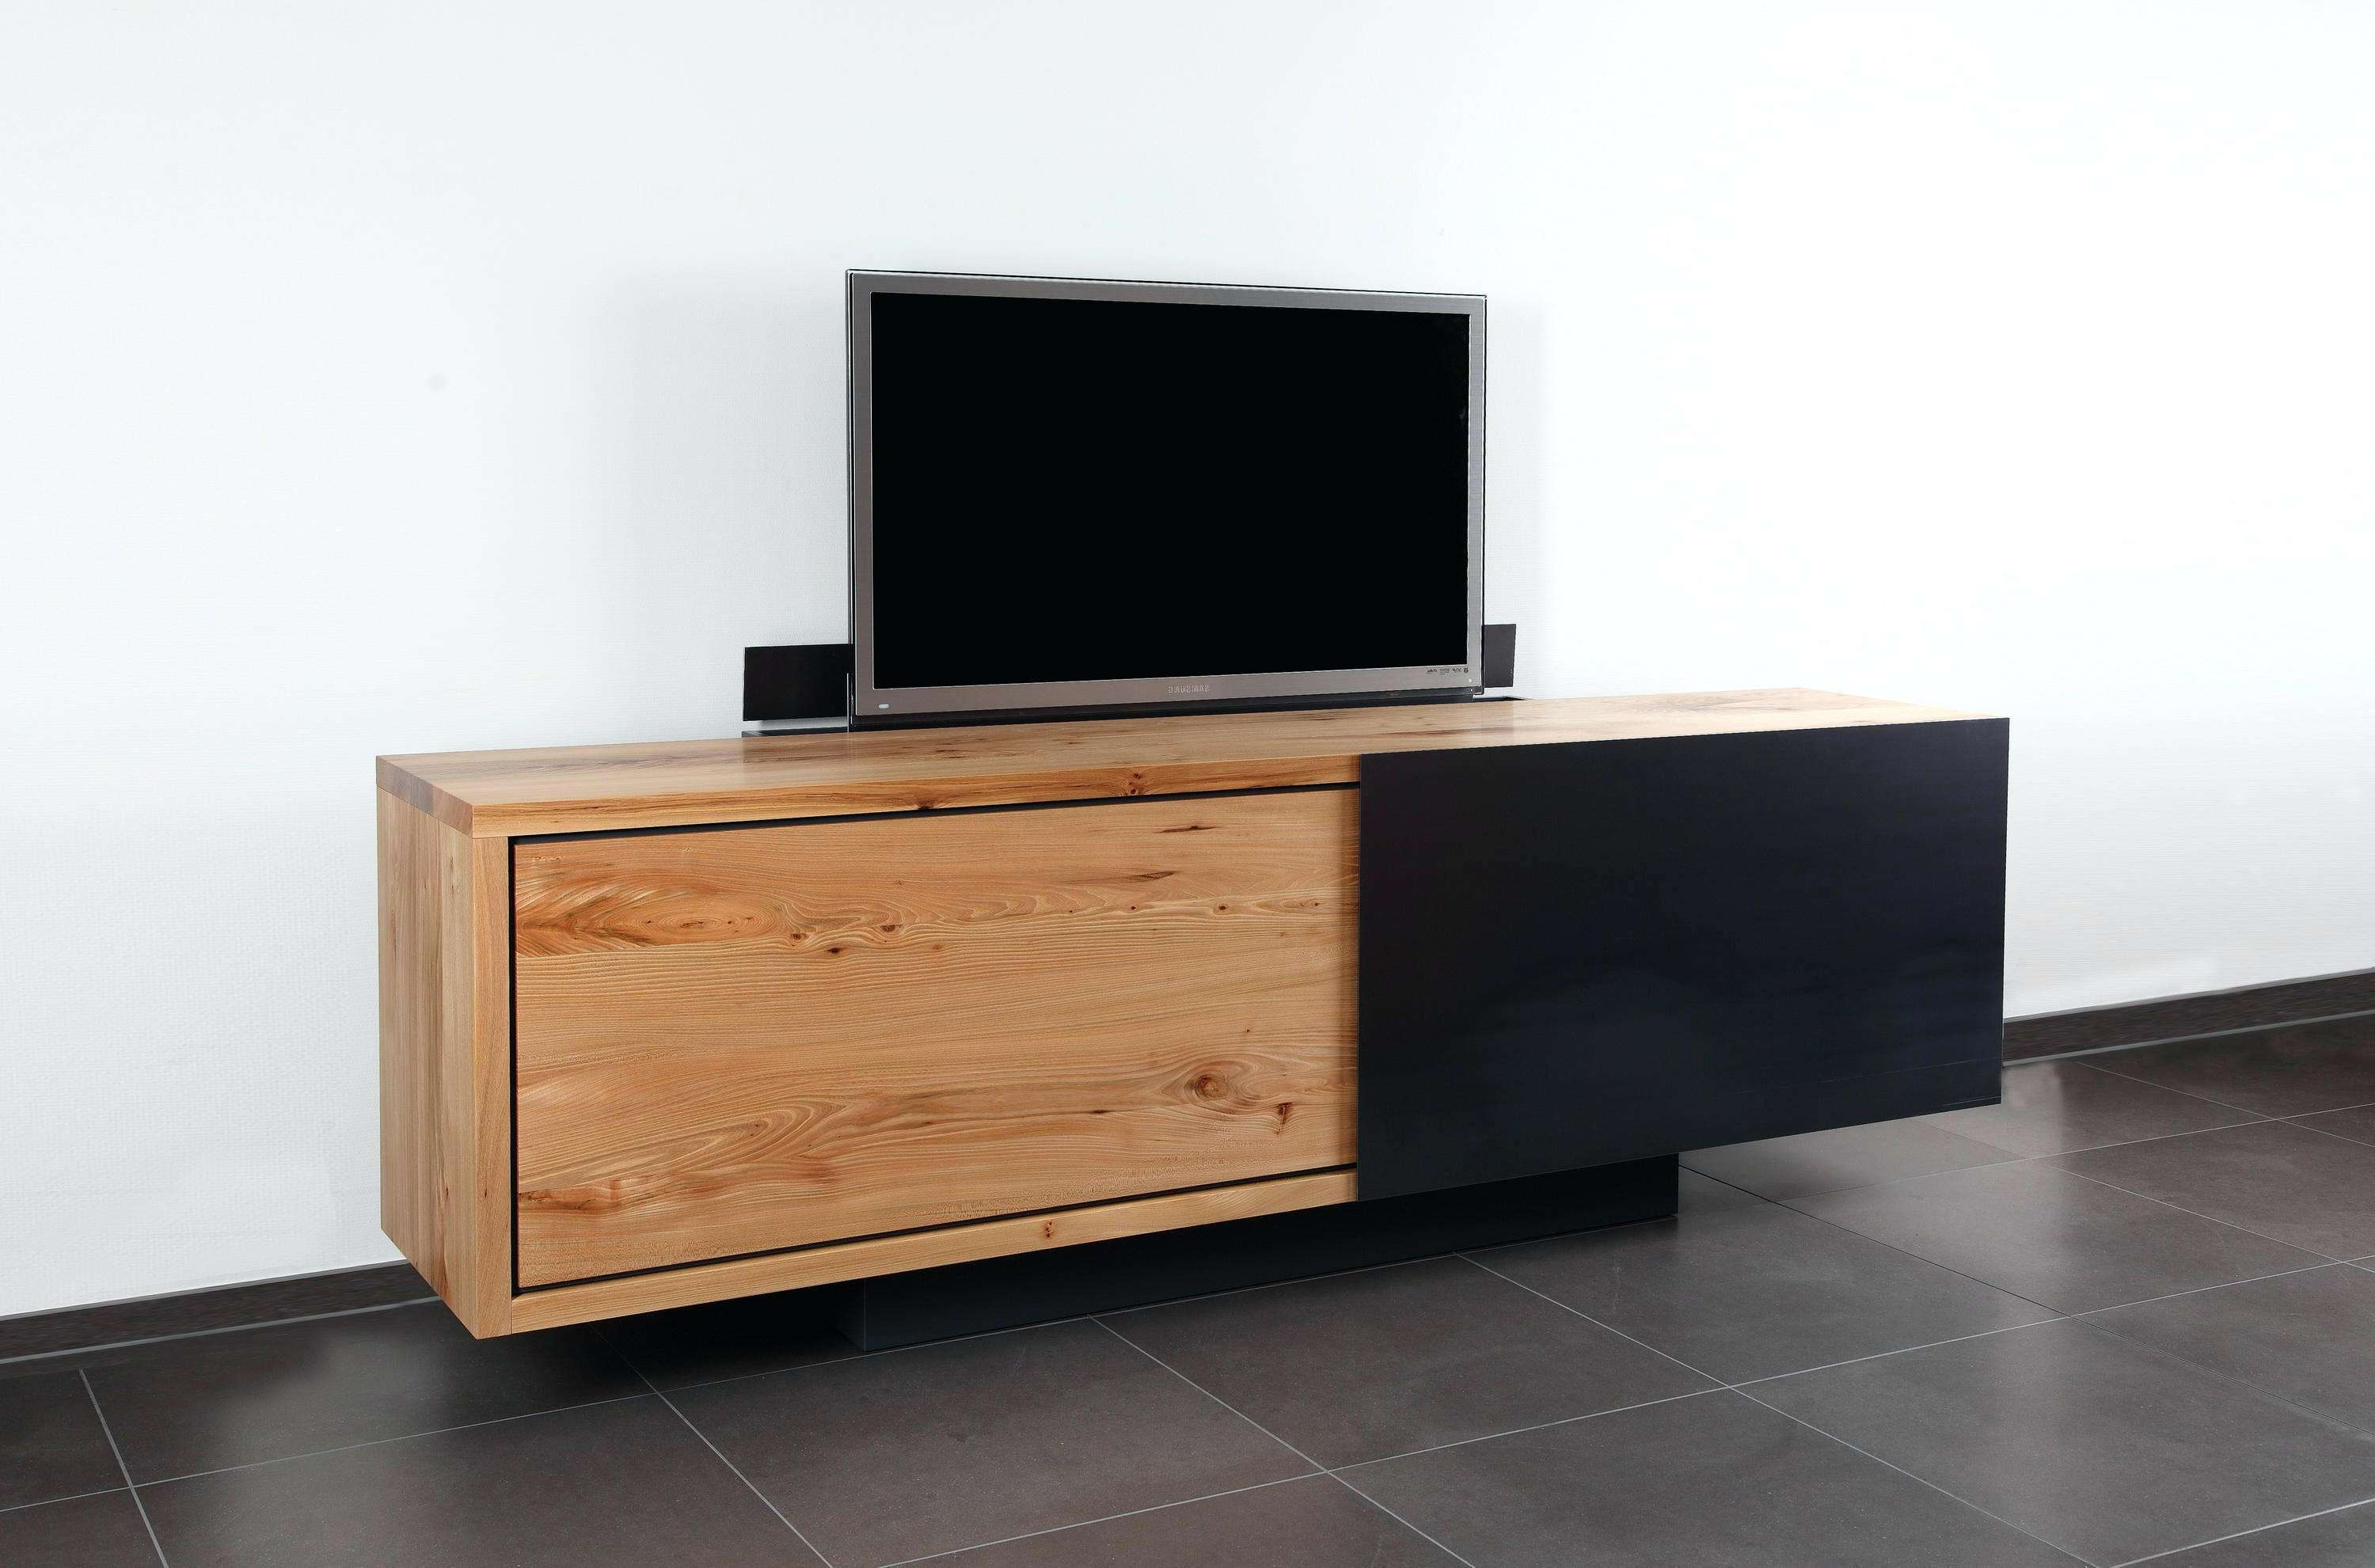 Design Sideboardign Sideboards Modern And Buffets Australia With Modern Sideboards And Buffets (View 13 of 20)